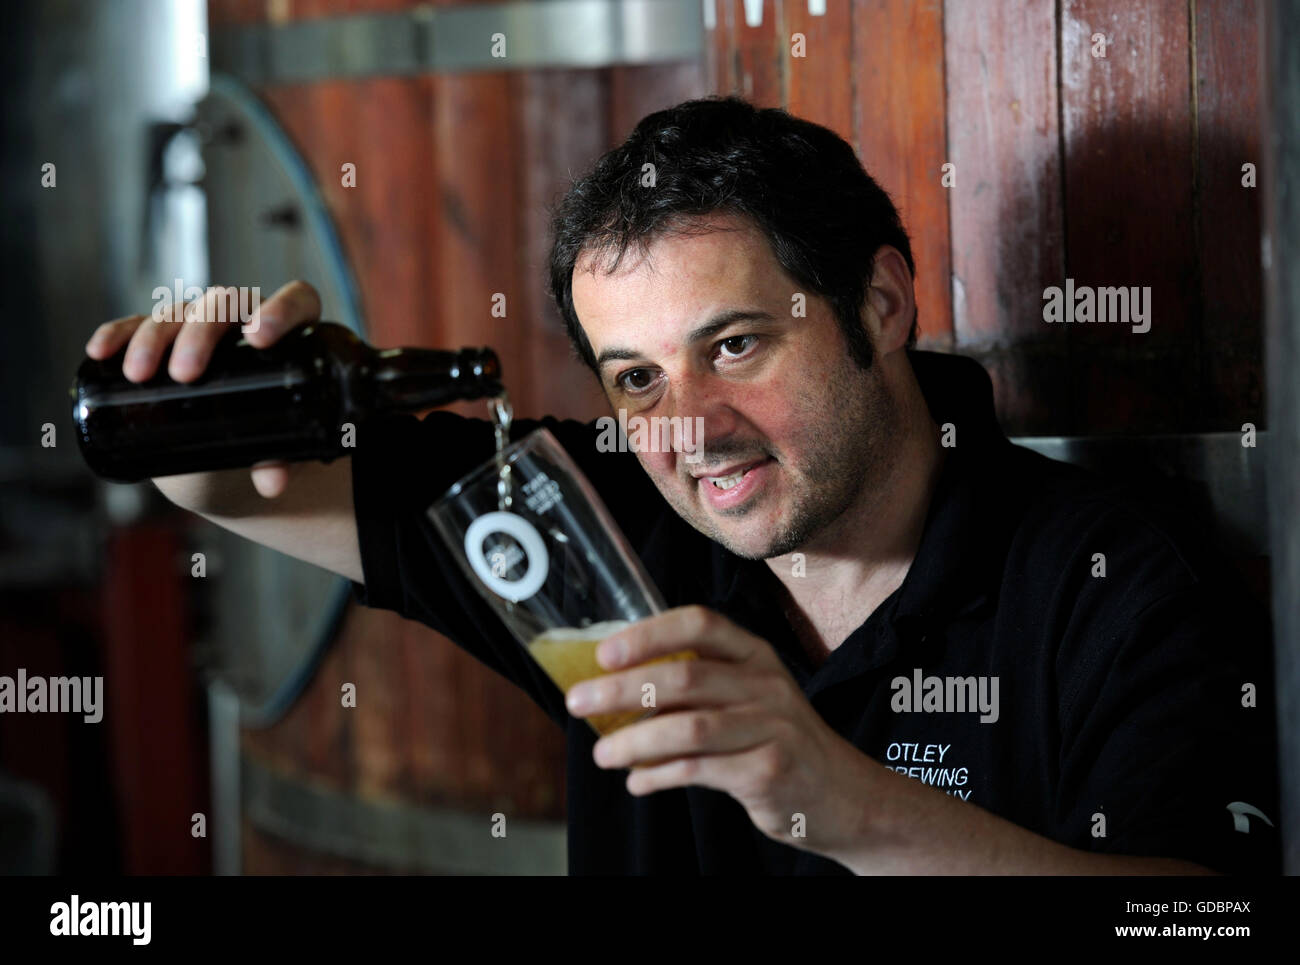 Nick Otley, MD of the Otley Brewing Company in Cilfynydd near Pontypridd, Wales sampling his beer UK - Stock Image